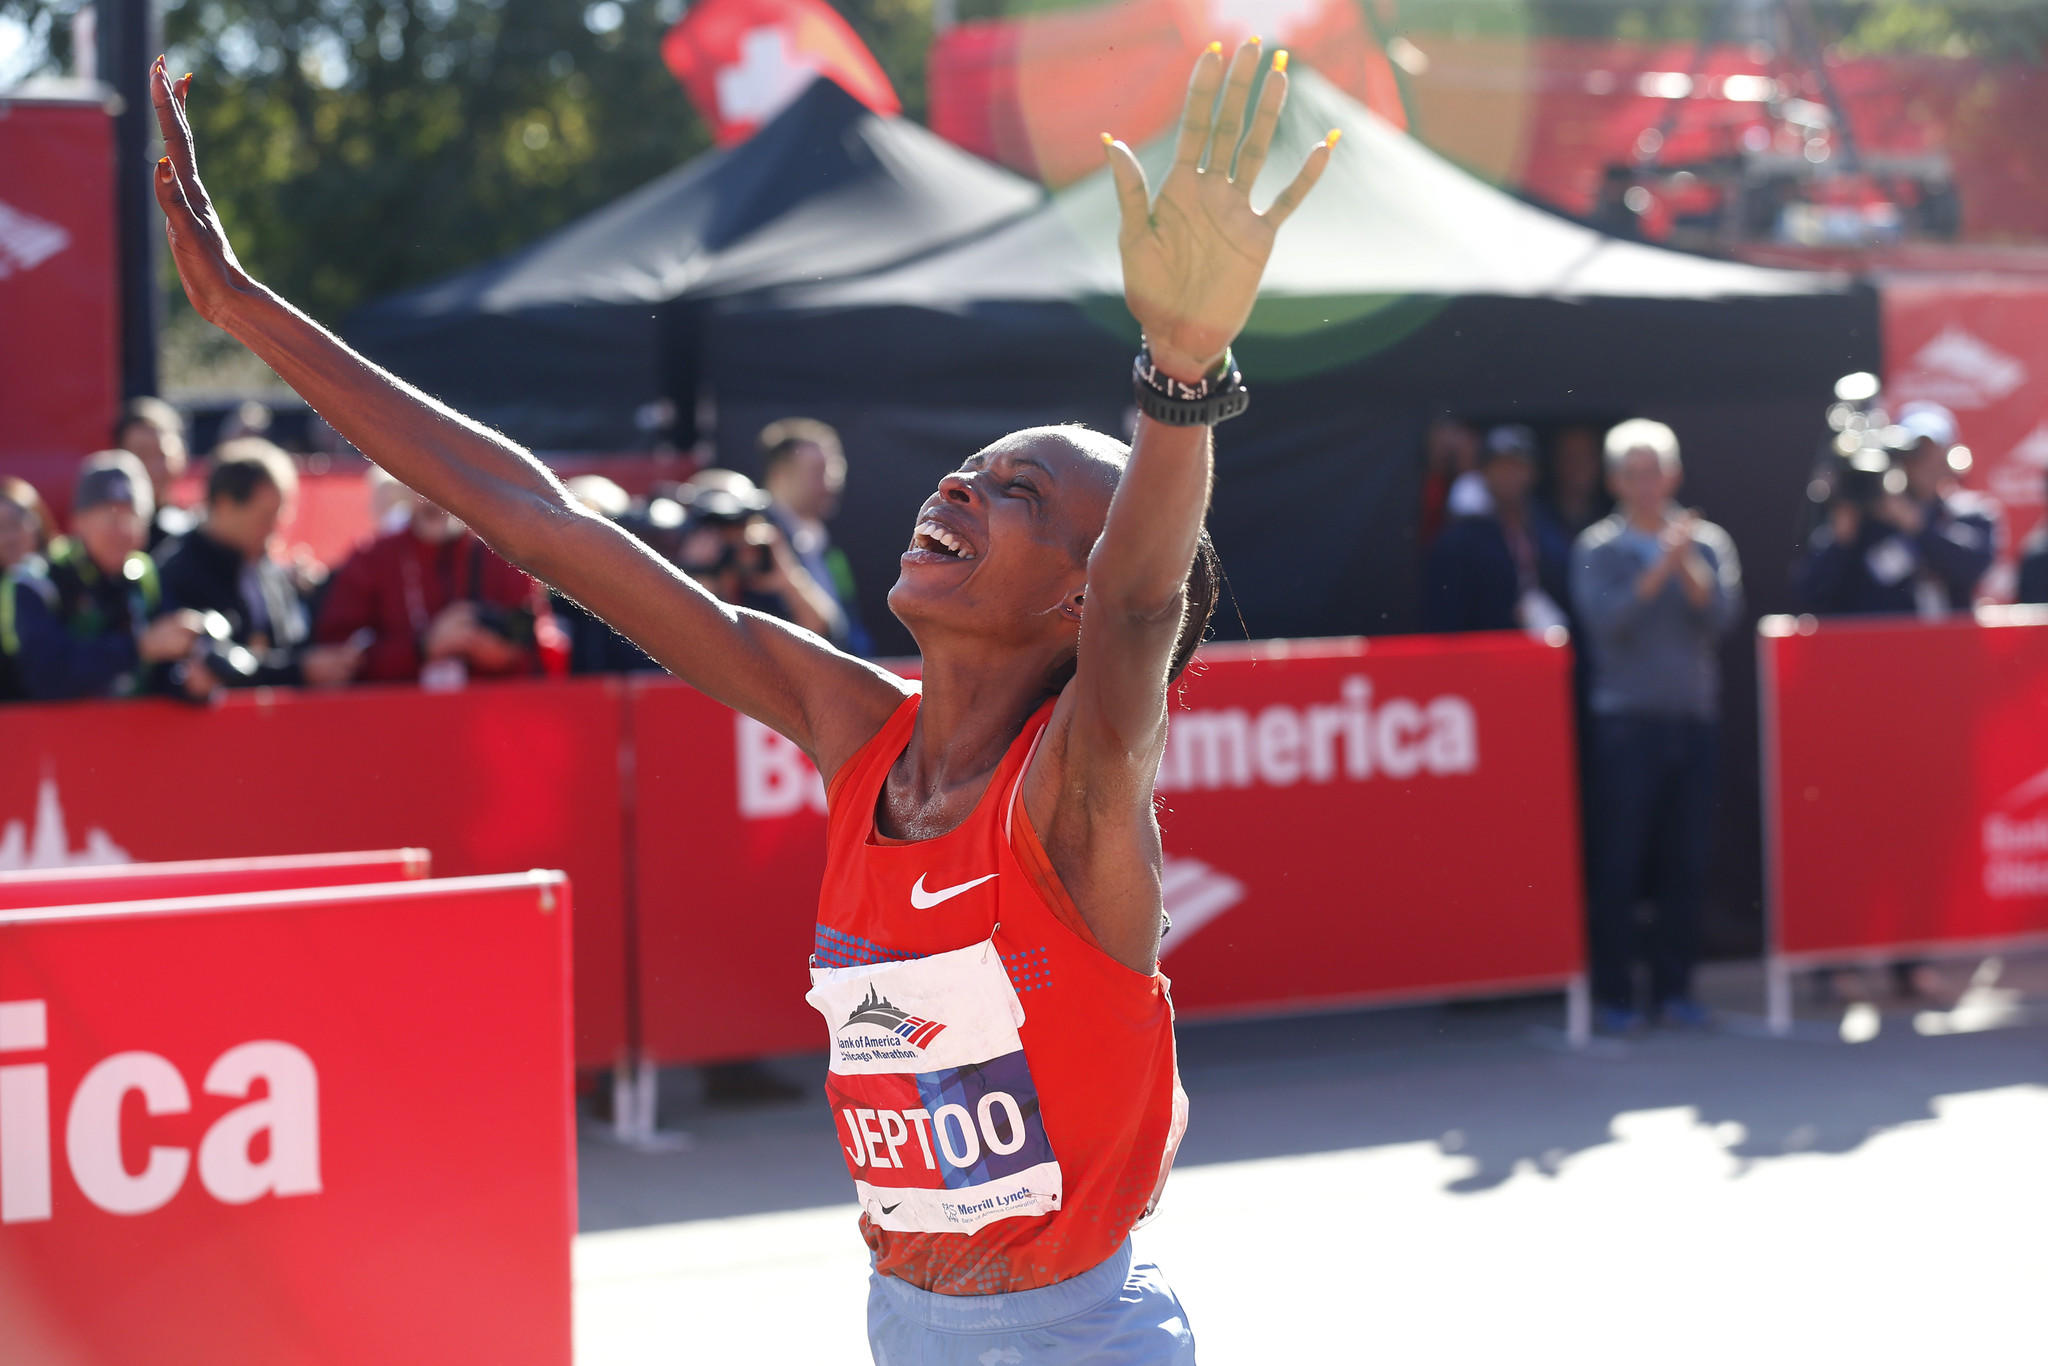 Rita Jeptoo exults after winning the 2013 Bank of America Chicago Marathon.